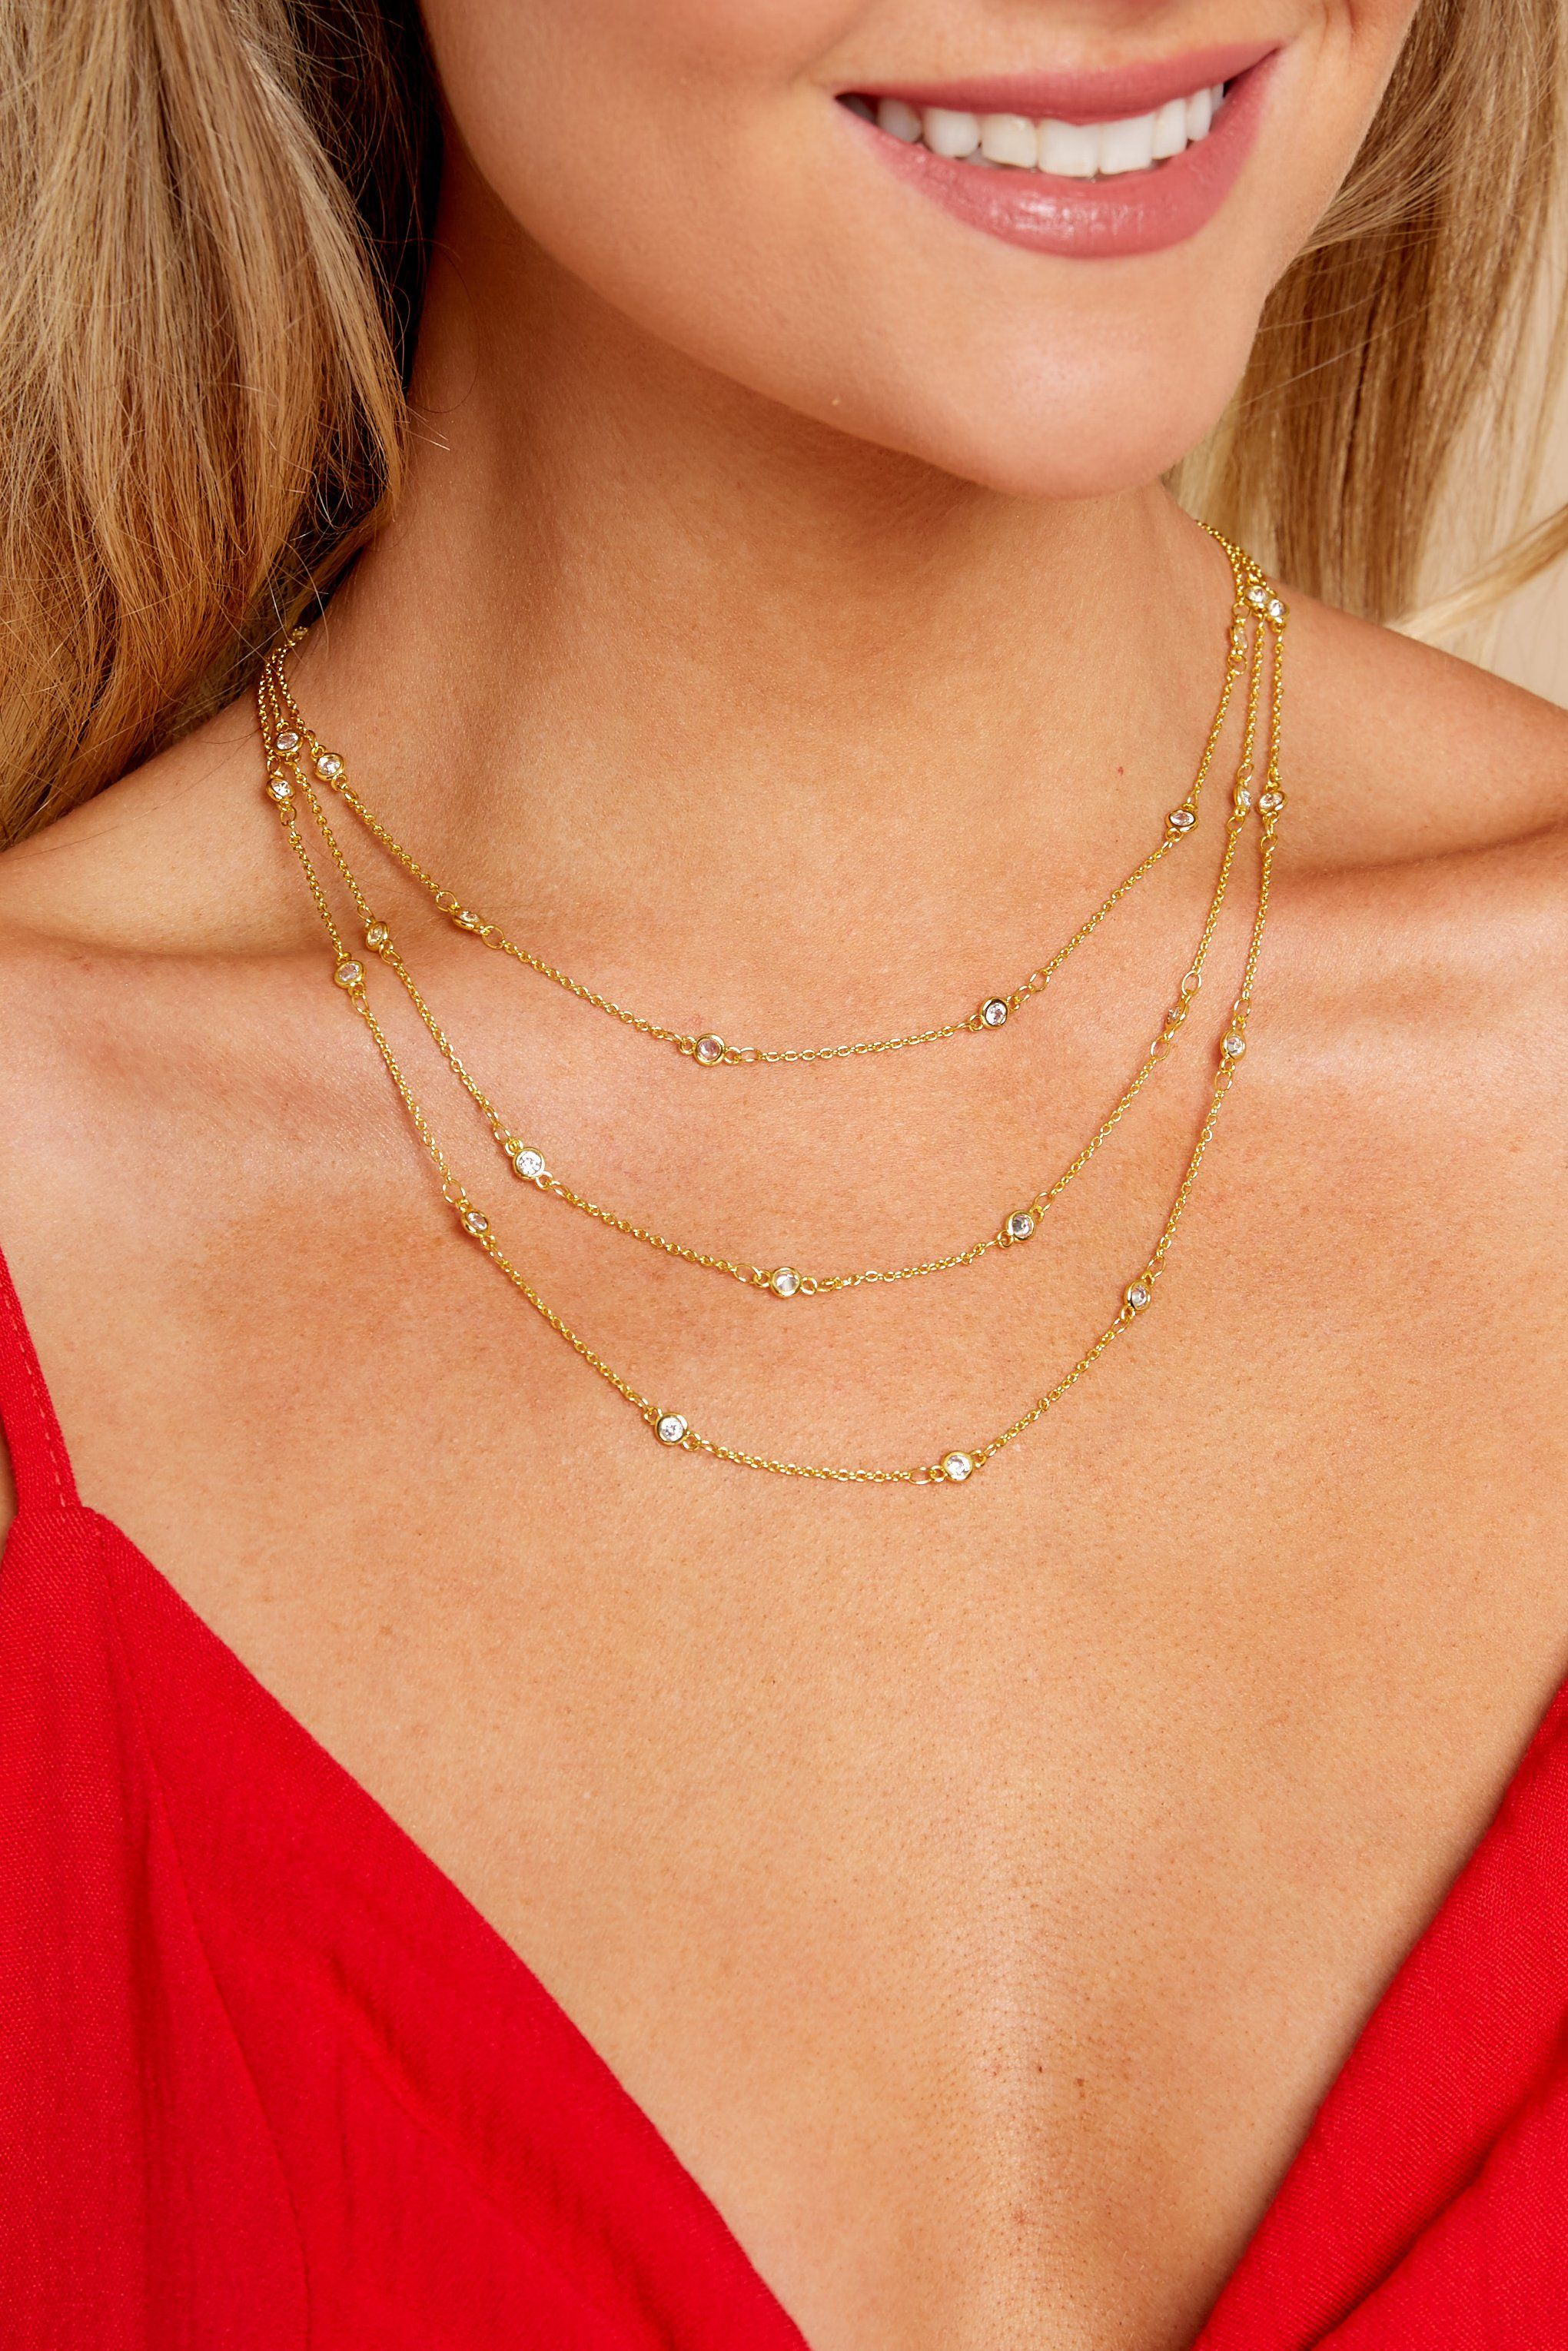 Raw & Rebellious Gold Layered Necklace - Trendy Layered Necklace